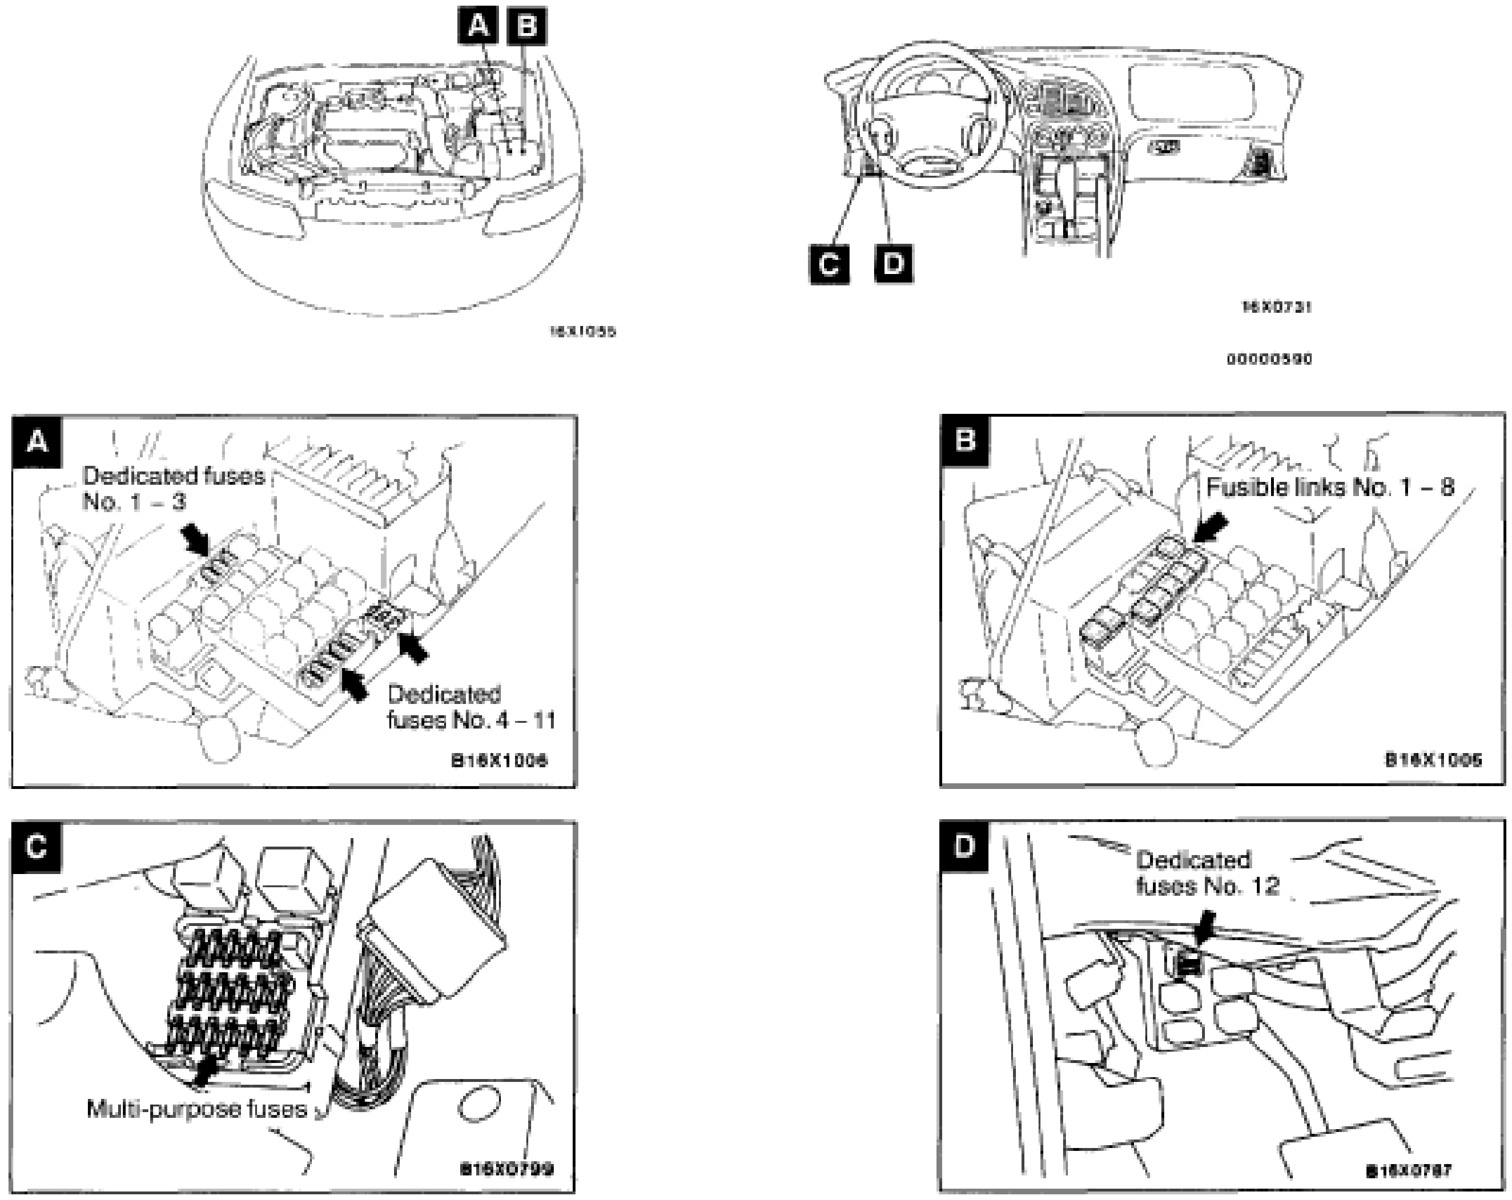 hight resolution of 2008 chrysler sebring fuse box location 1 wiring diagram source2008 sebring fuse box location wiring diagram